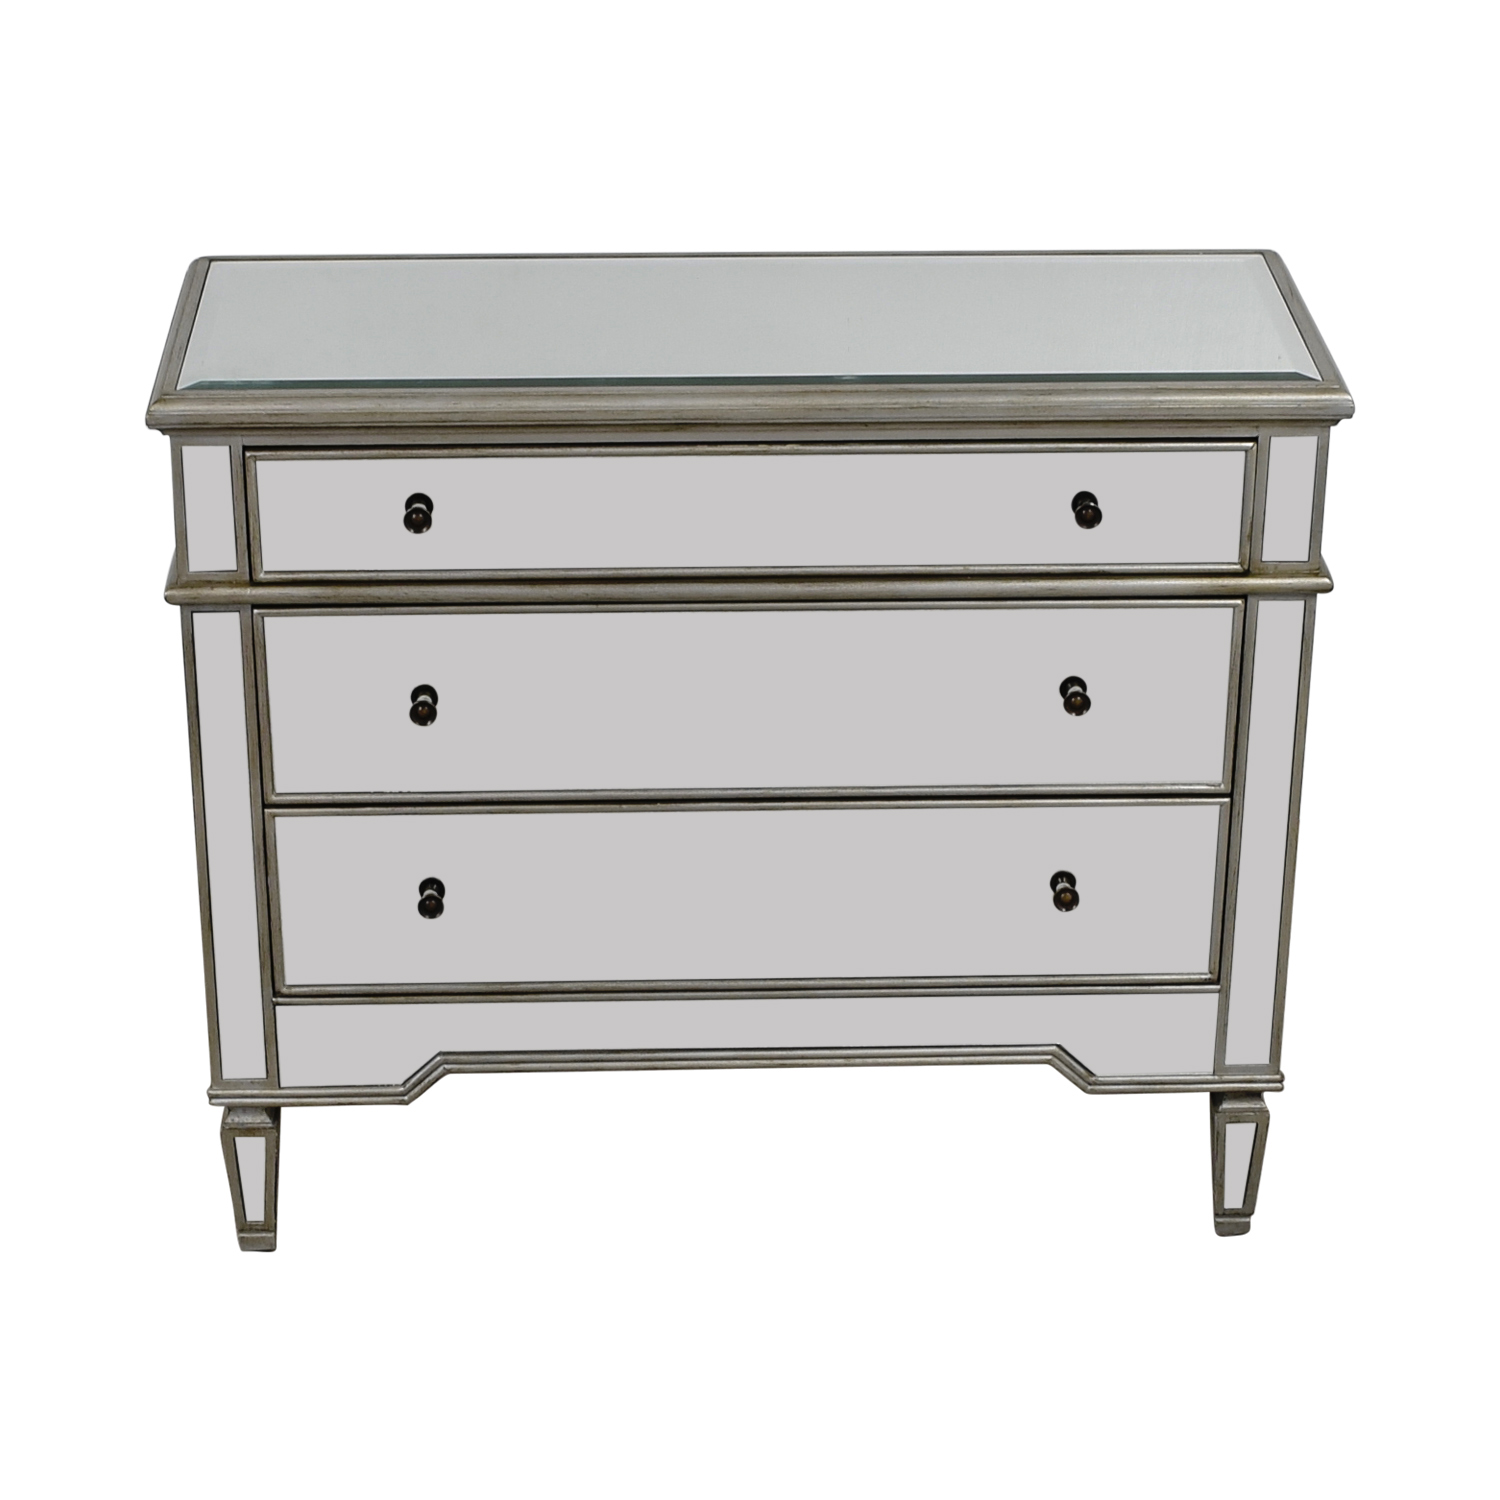 shop Pier 1 Imports Pier 1 Imports Silver Mirrored Three-Drawer Dresser online